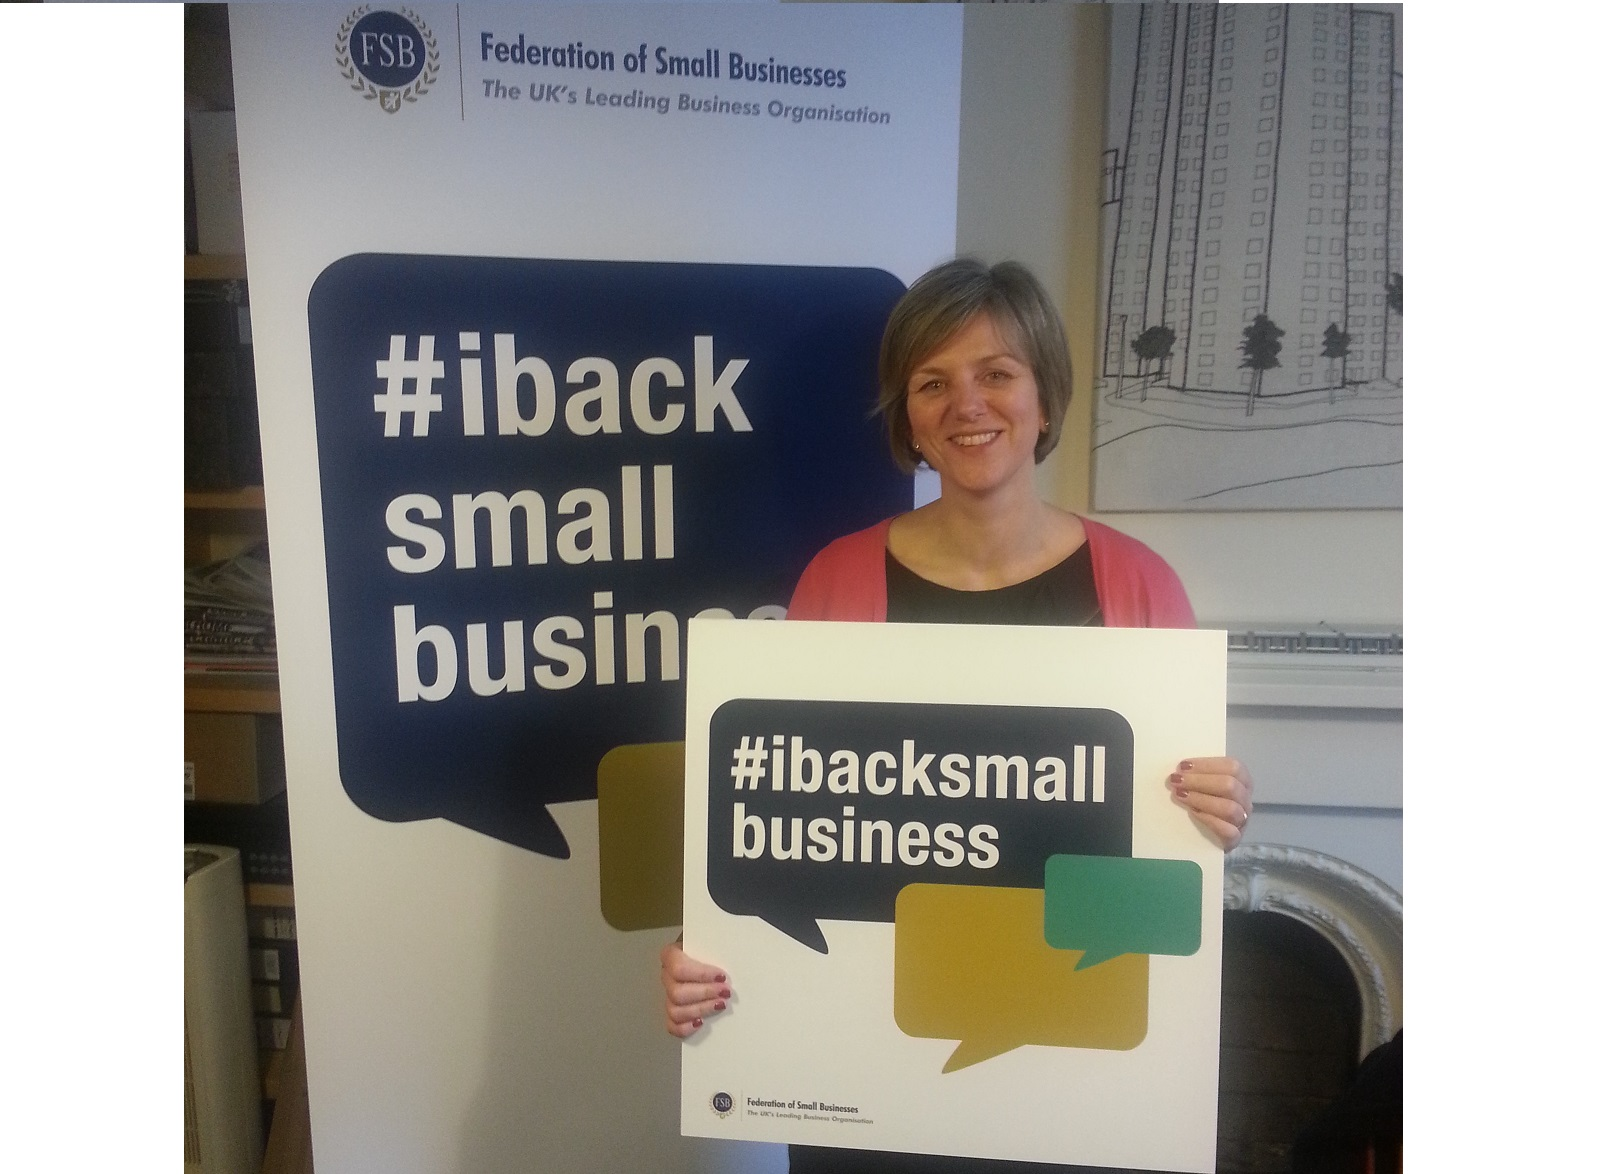 I_back_small_business_4.jpg